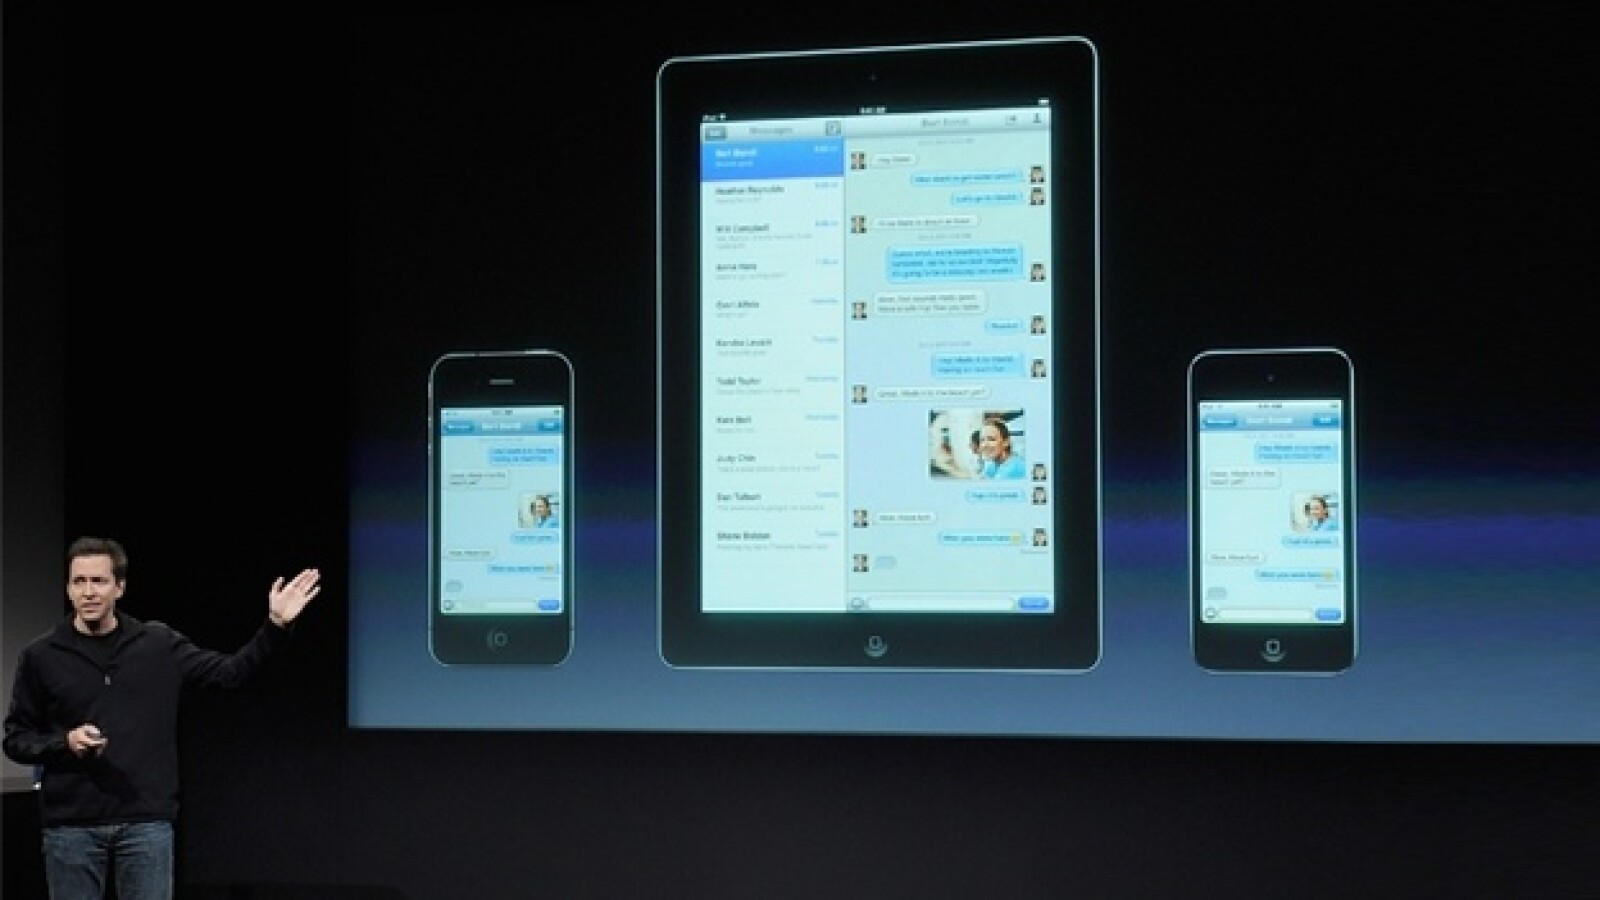 iMessage apple iphone 4oct 2011 presentacion